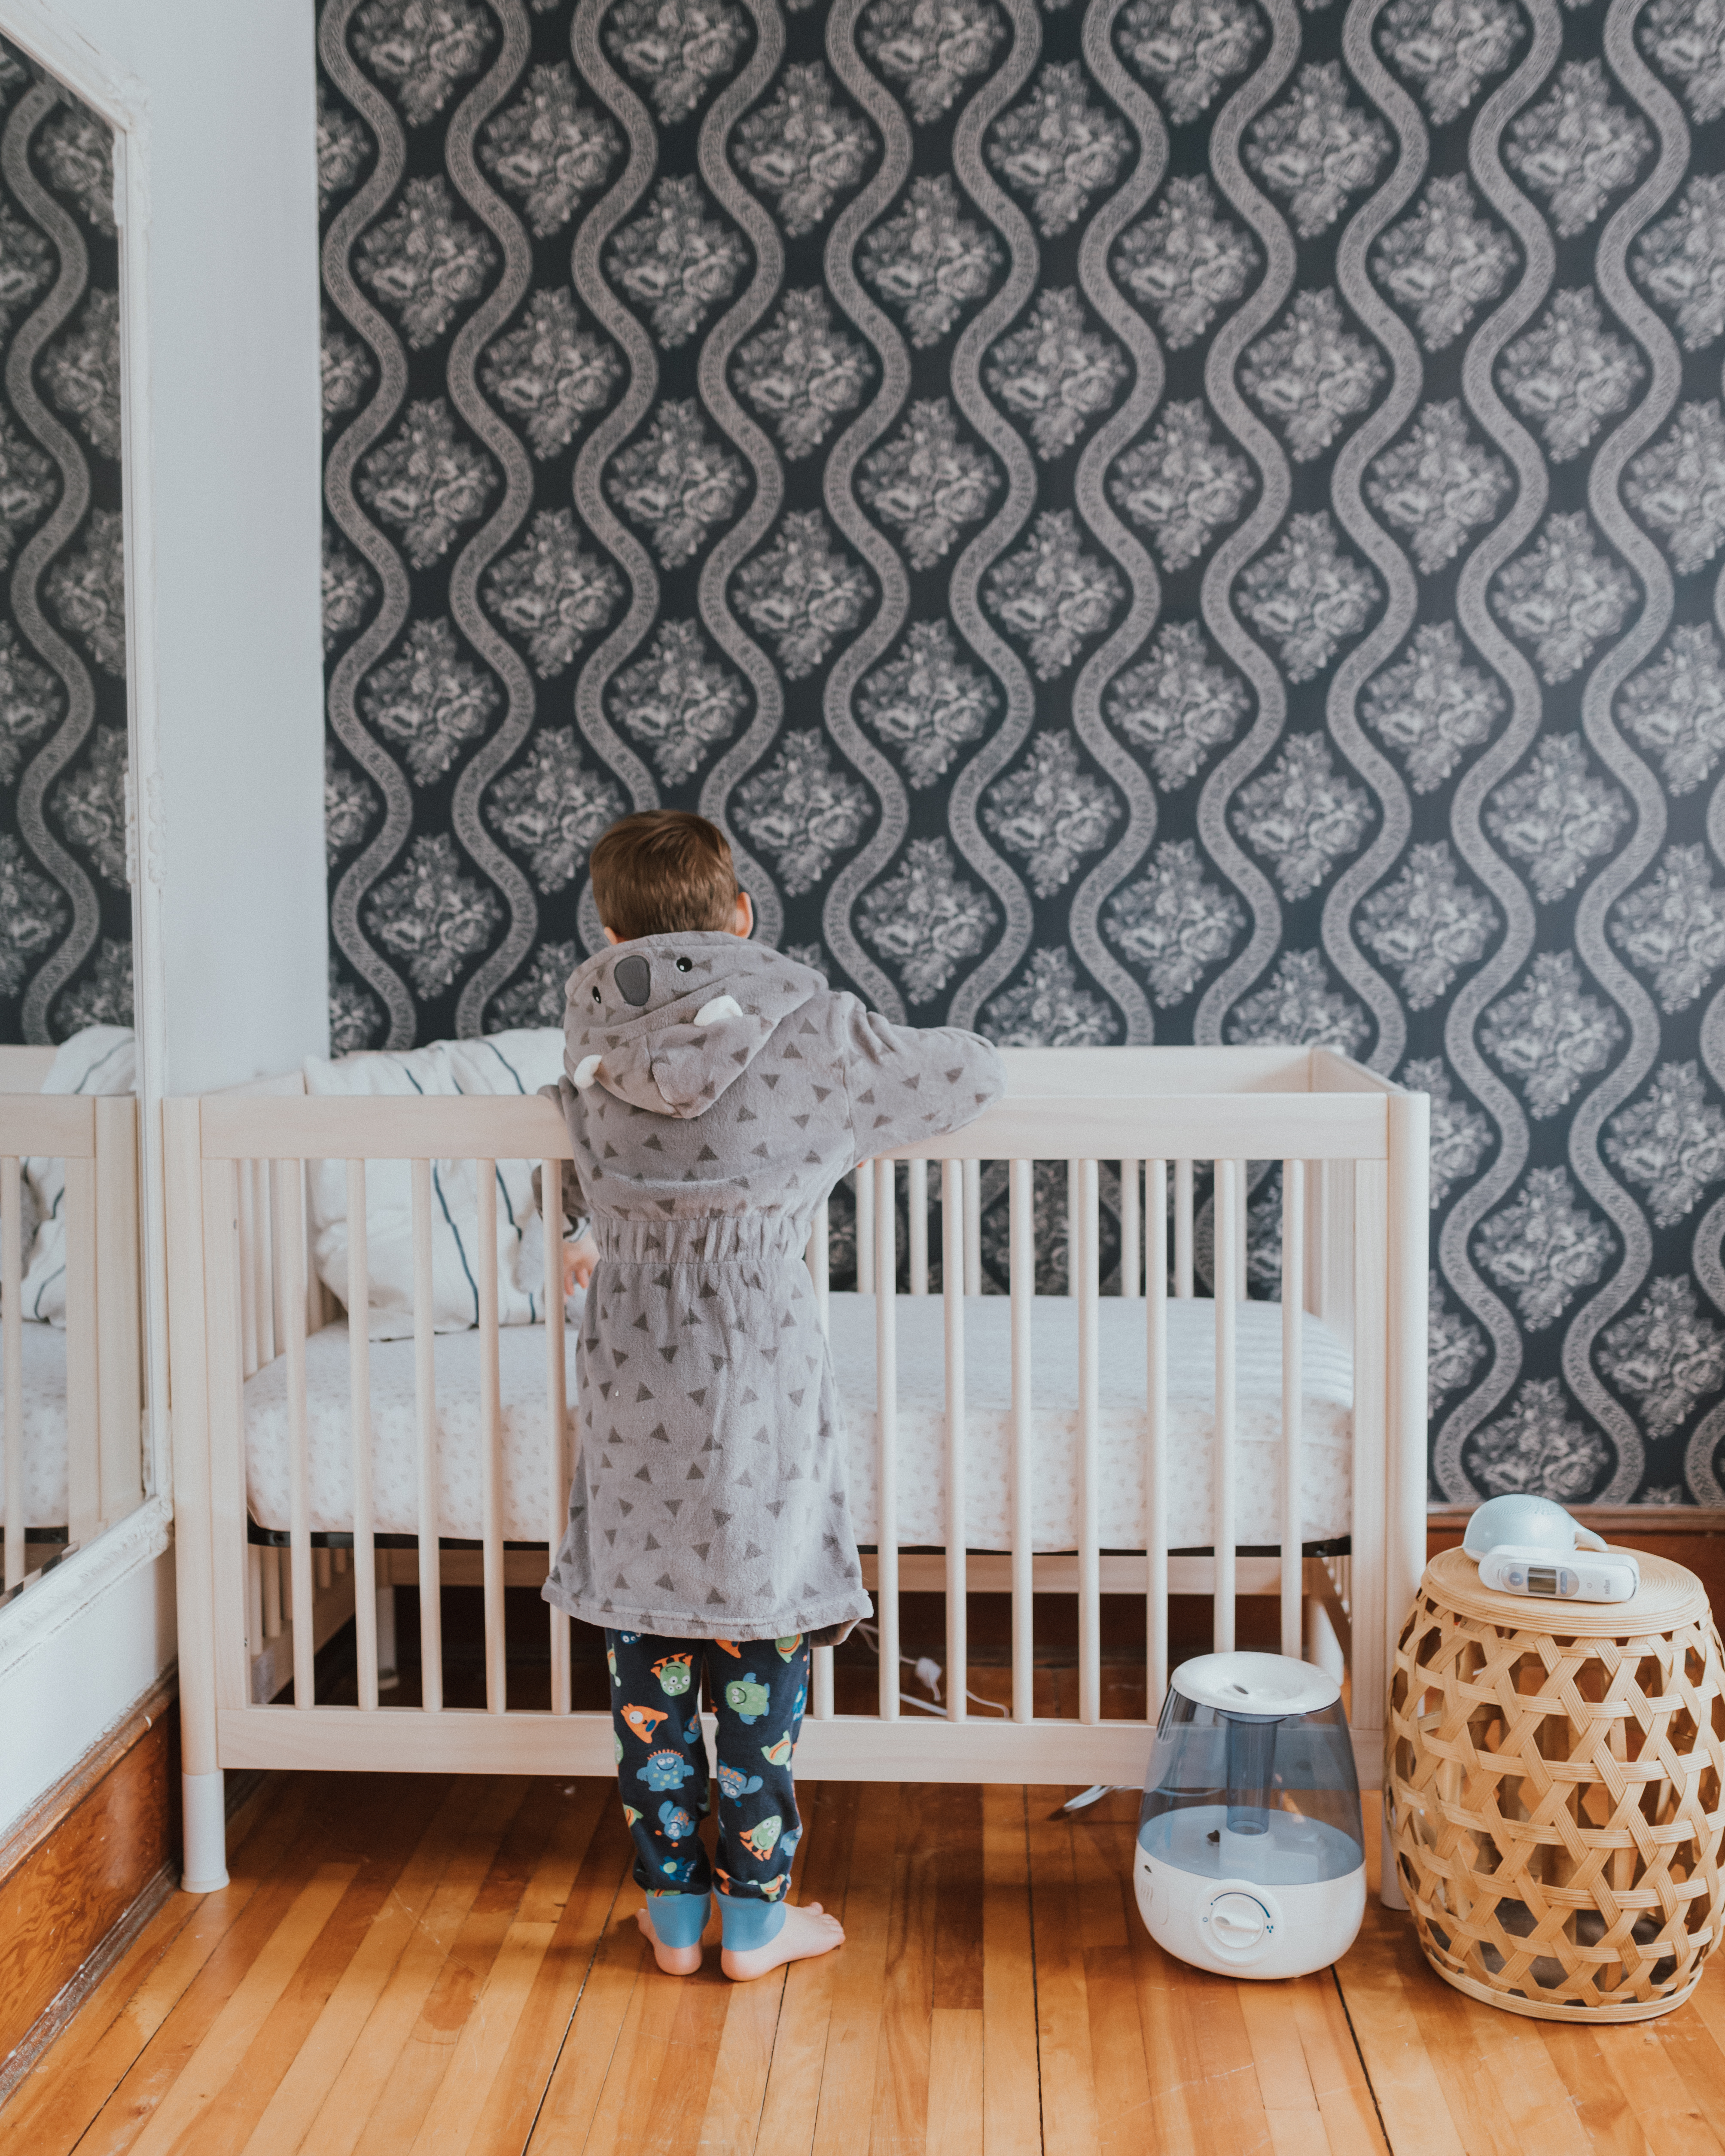 The Wild Decoelis | What You Need On Your Registry To Keep Baby Healthy